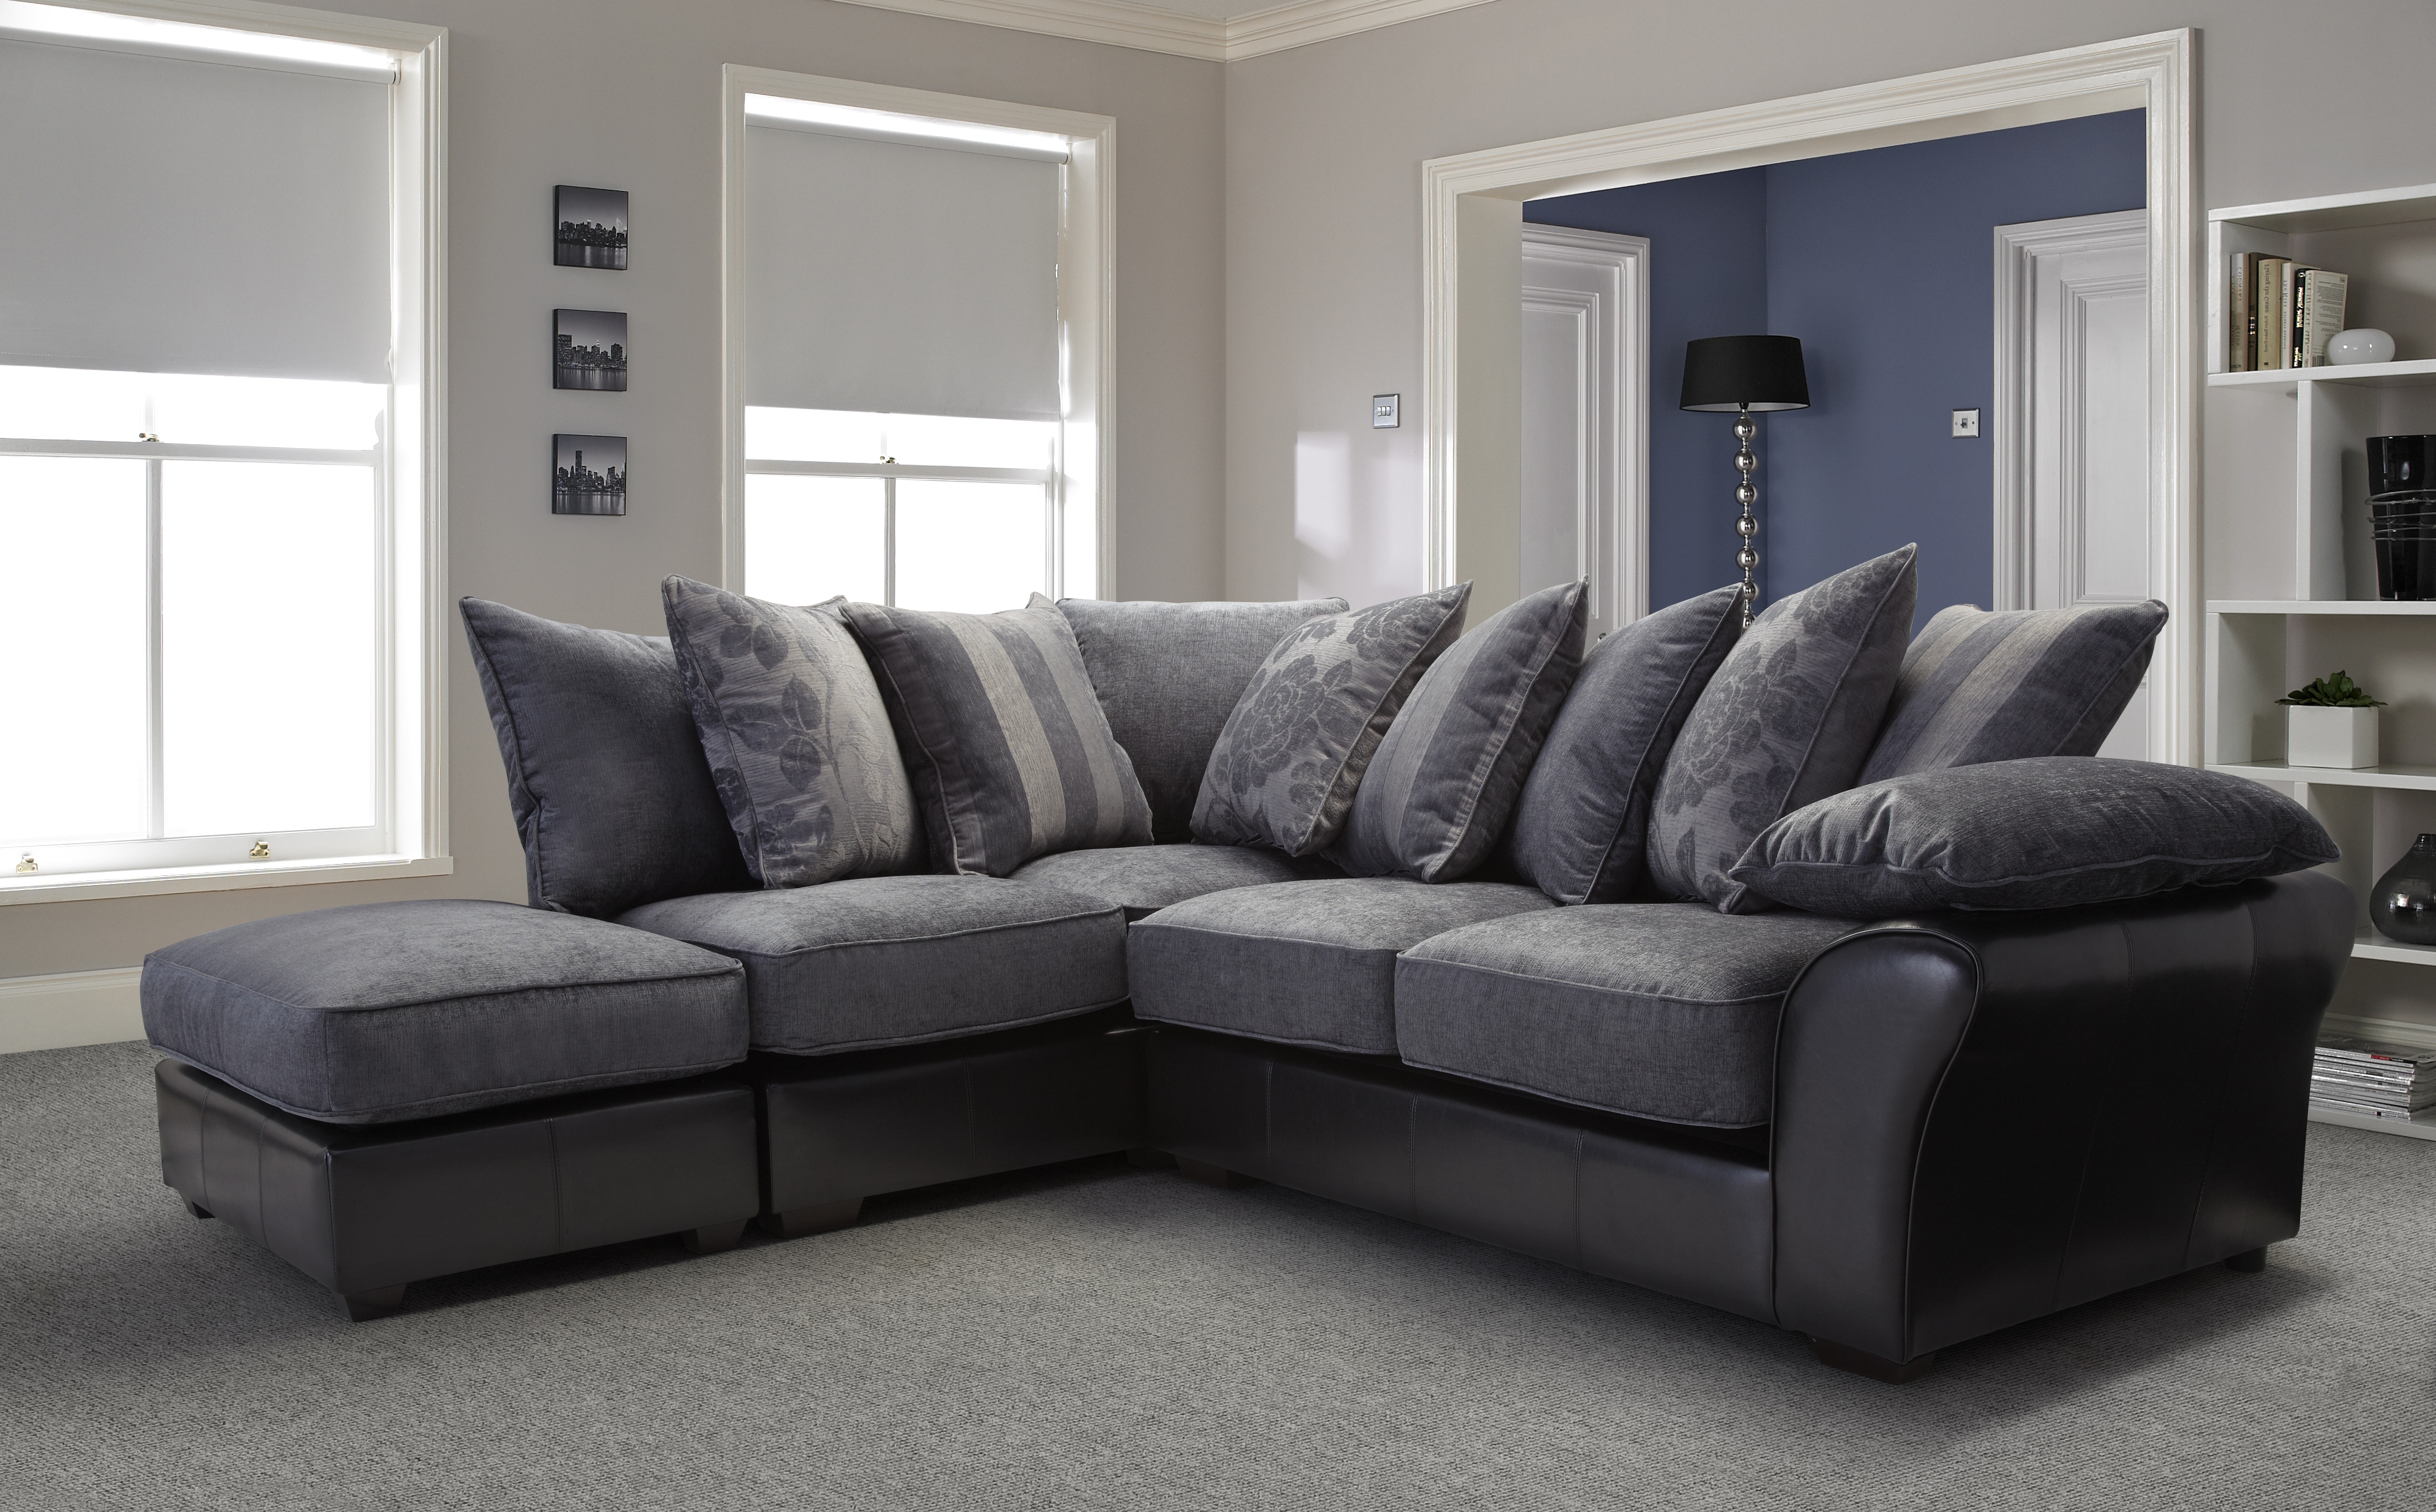 Furniture: Breathtaking Corner Sofas Decorating Ideas Leather With 2018 Leather Corner Sofas (View 15 of 20)